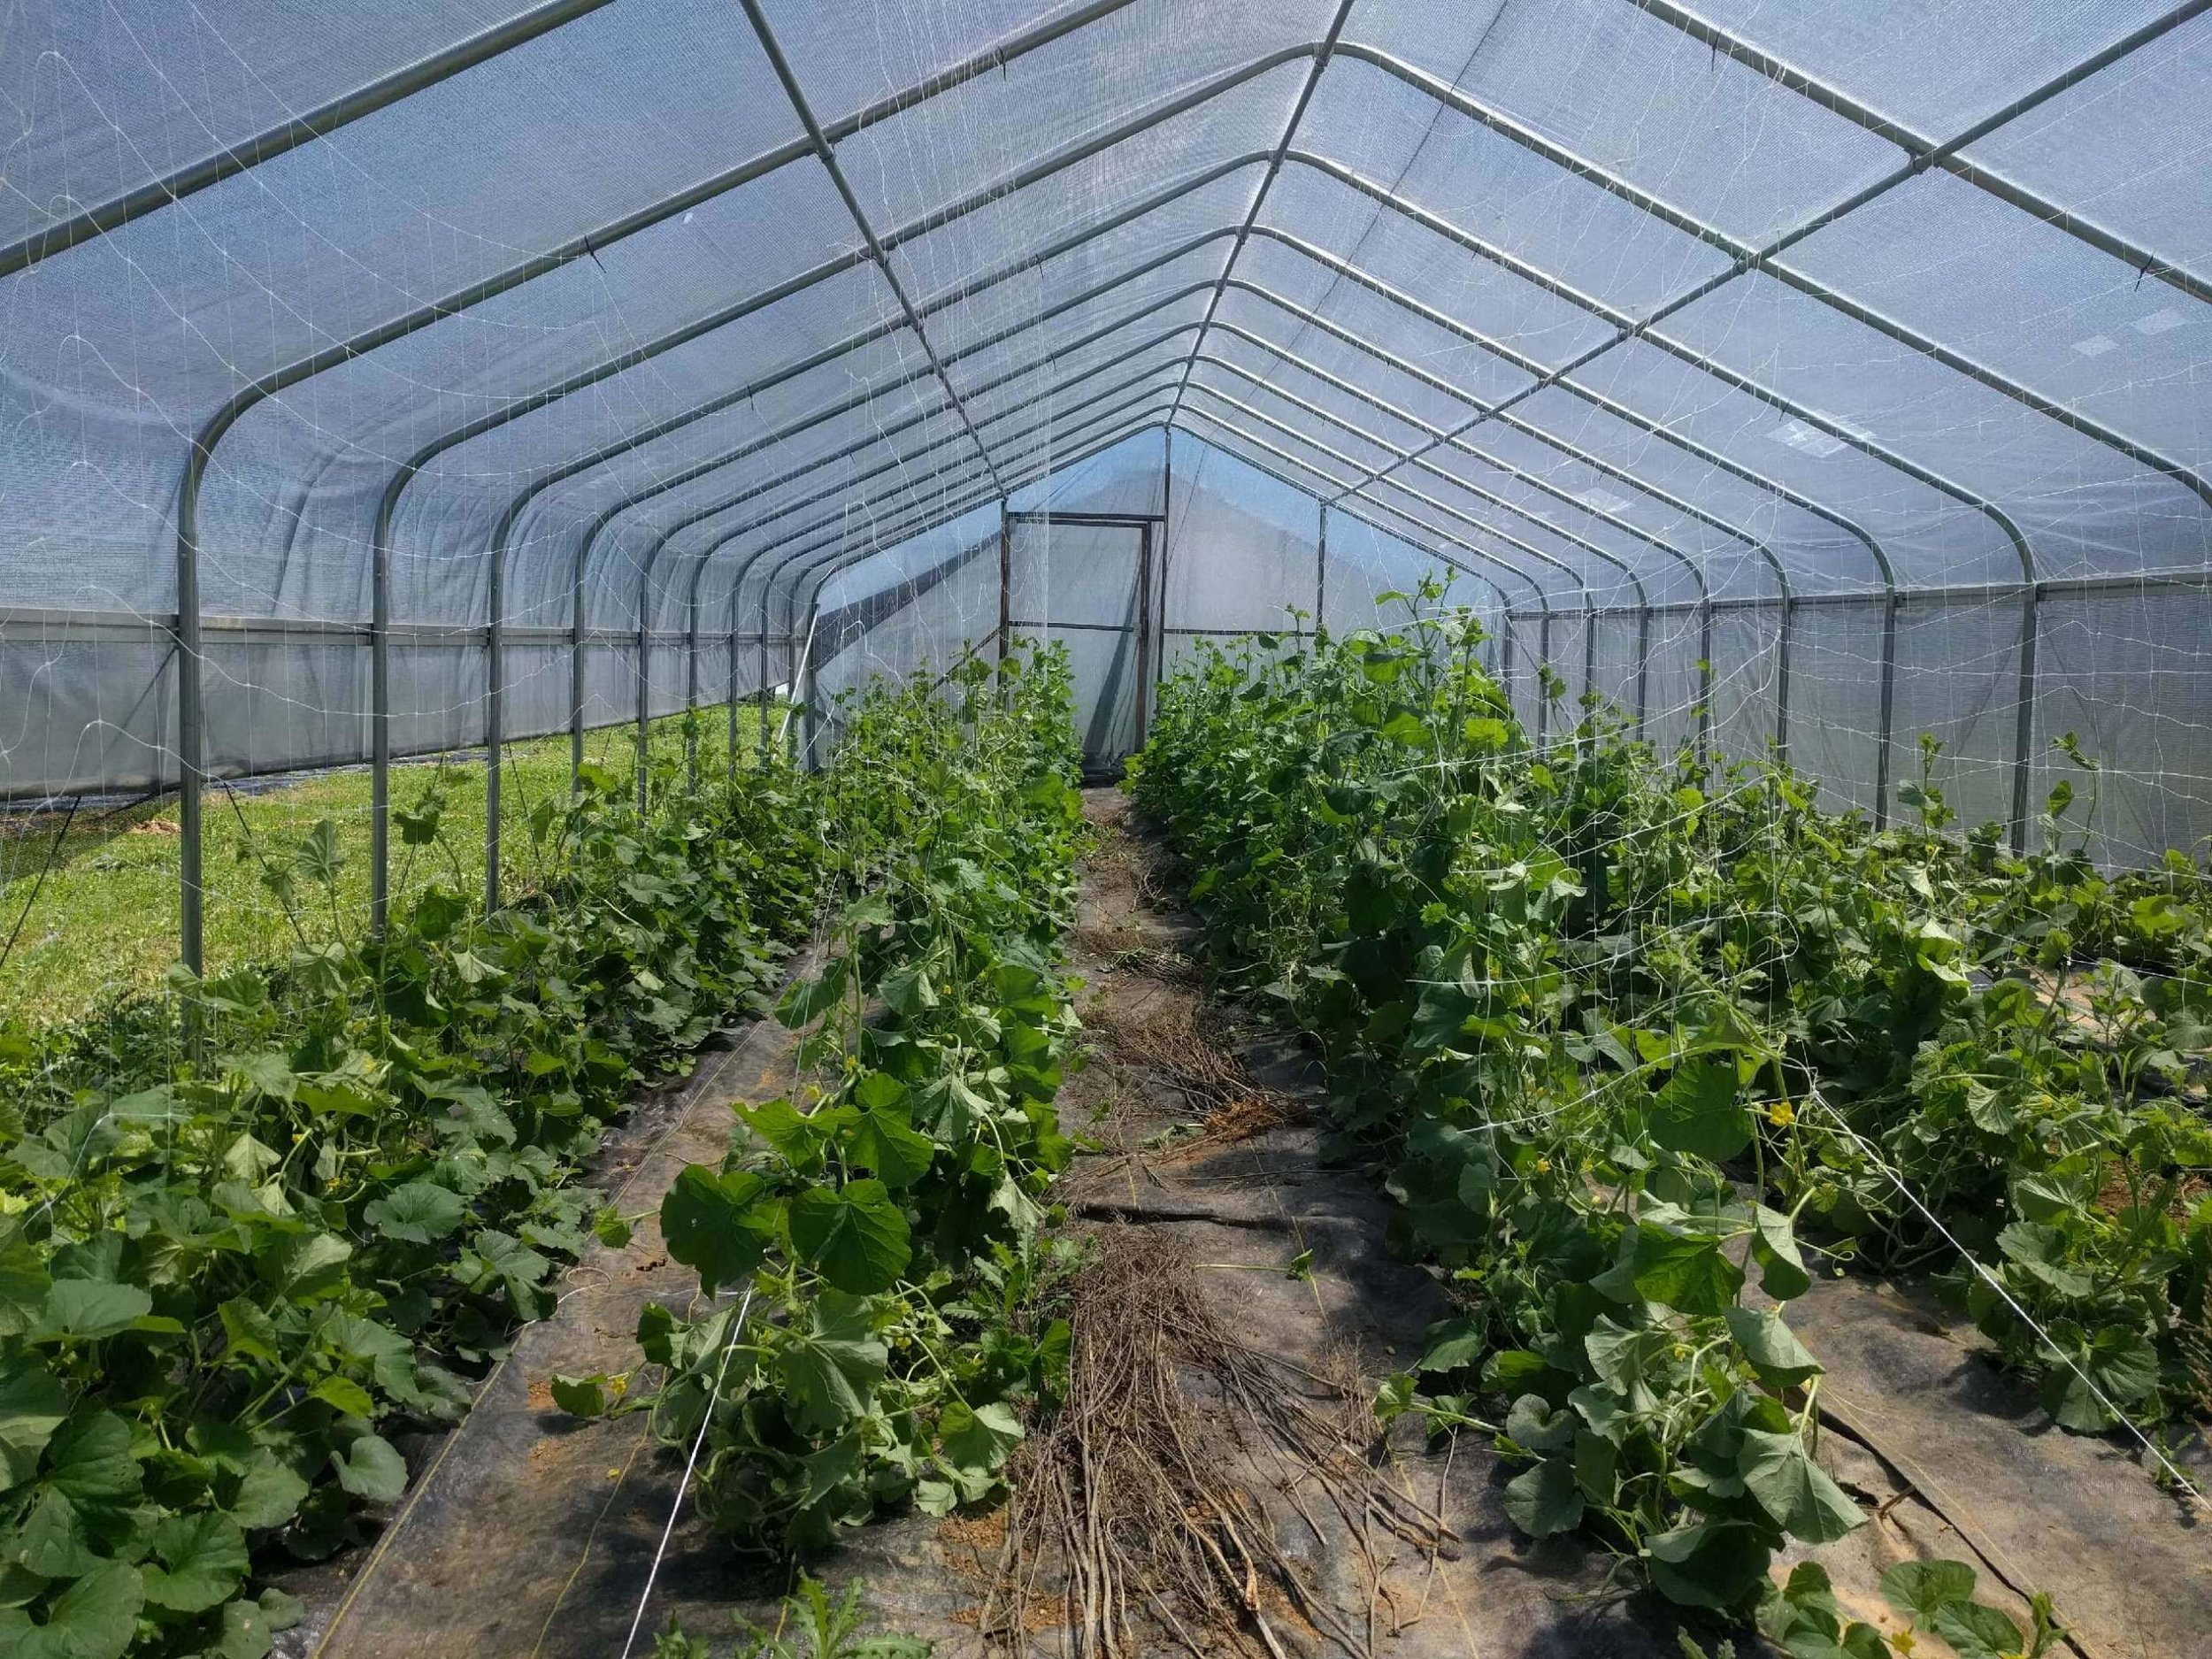 Melons in the high tunnel are coming along!